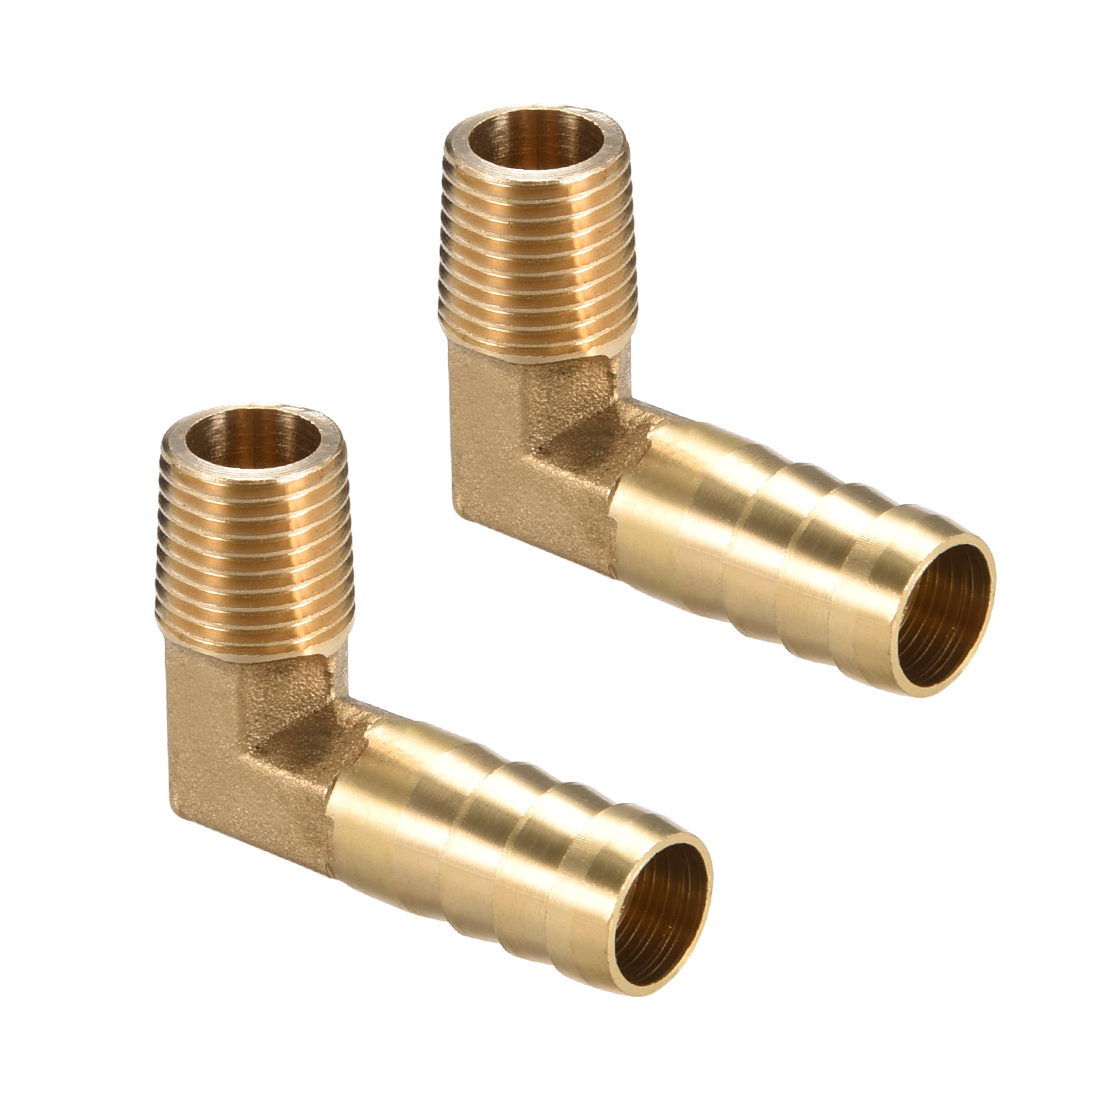 """Brass Barb Hose Fitting 90 Degree Elbow 12mm Barbed x 1/4"""" G Male Pipe 2pcs"""